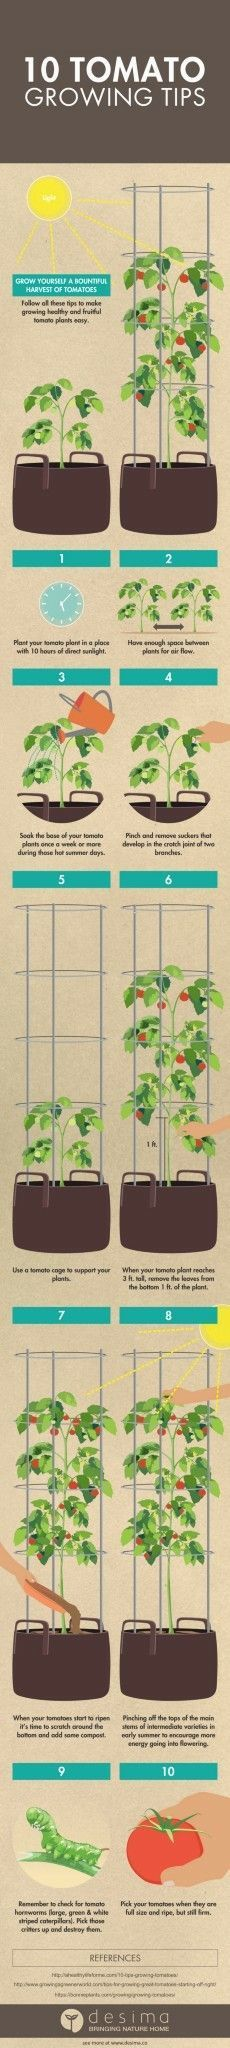 Tomato growth tips